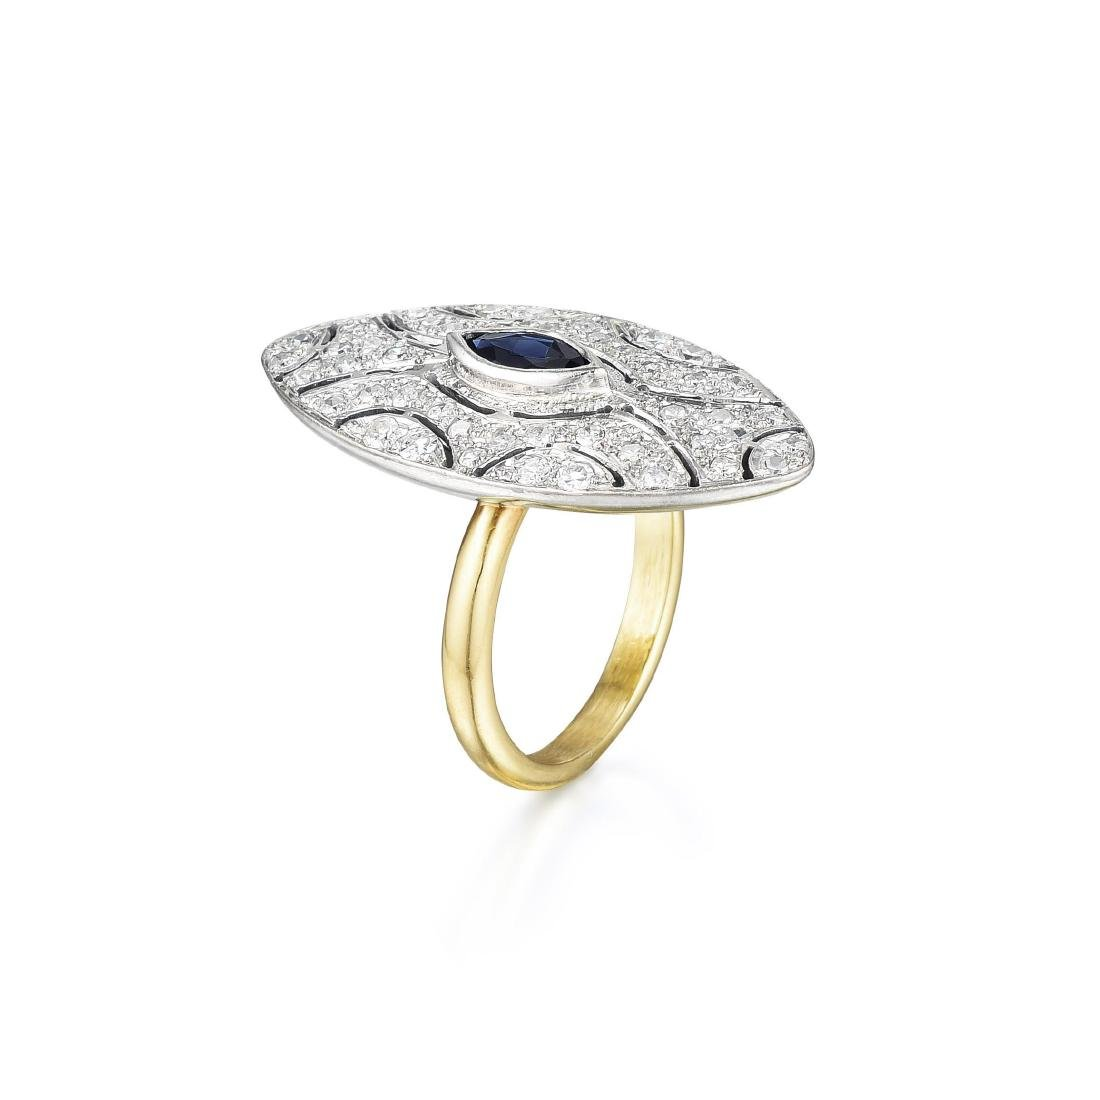 A 14K Gold Sapphire and Diamond Ring - 2